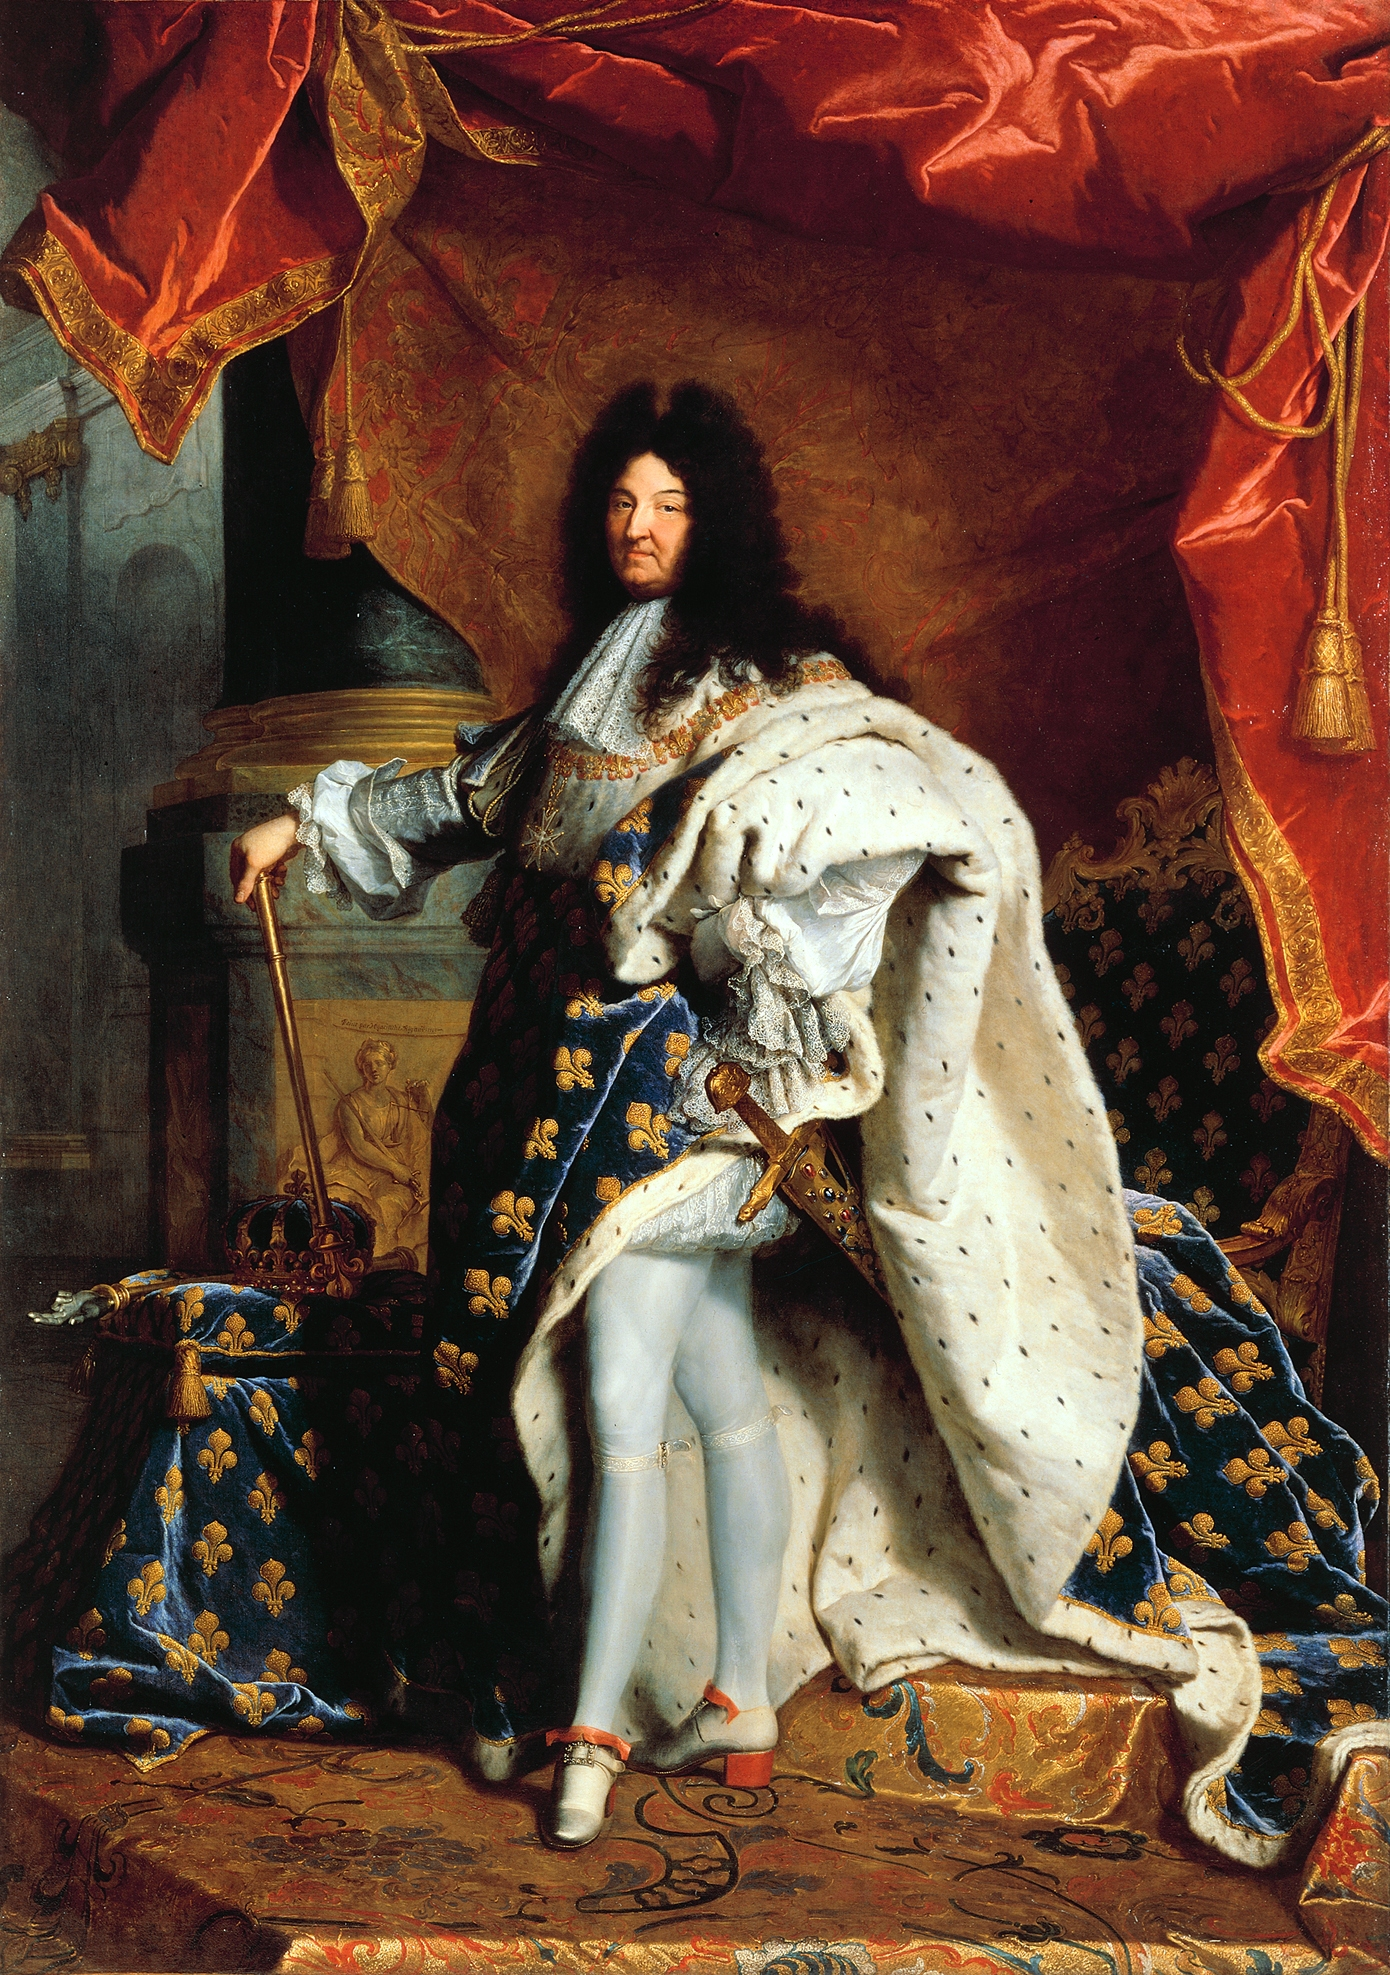 Louis XIV, baptised as Louis-Dieudonné, King of France and of Navarre